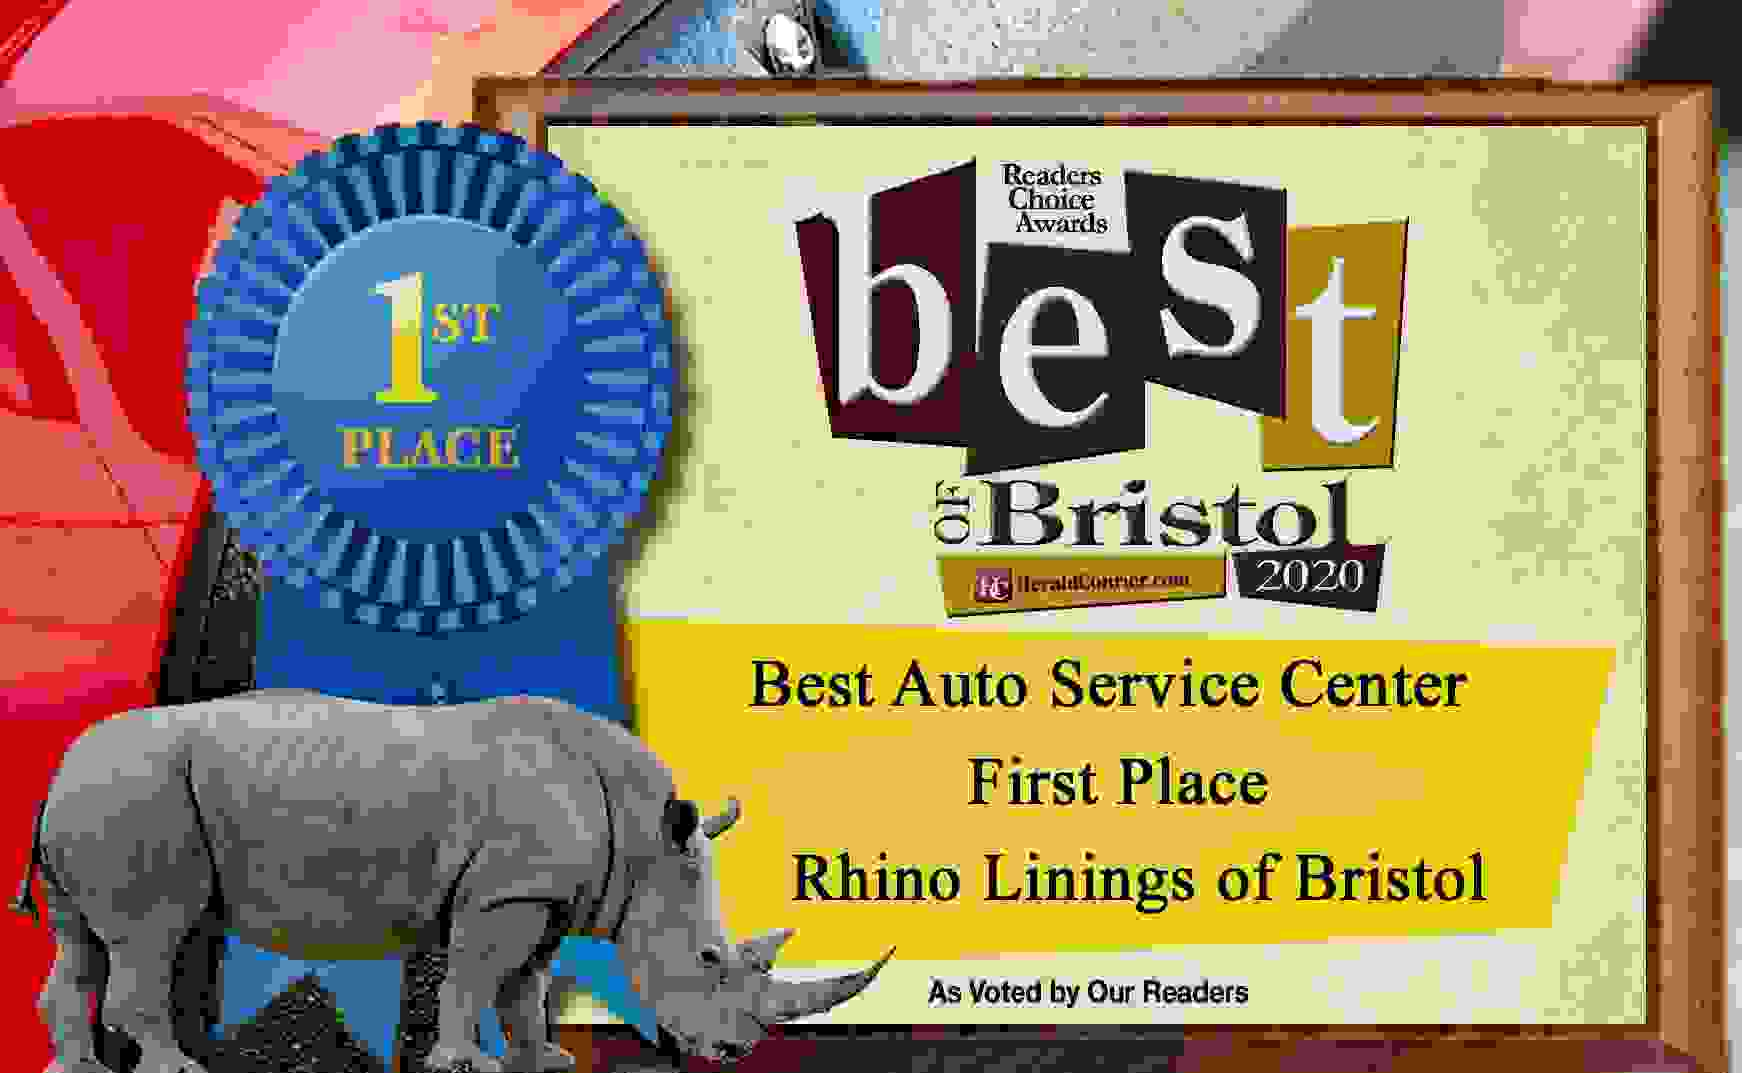 Best of Bristol, Best Auto Care Center, Virginia, Tennessee, Rhino Linings of Bristol, Voted #1